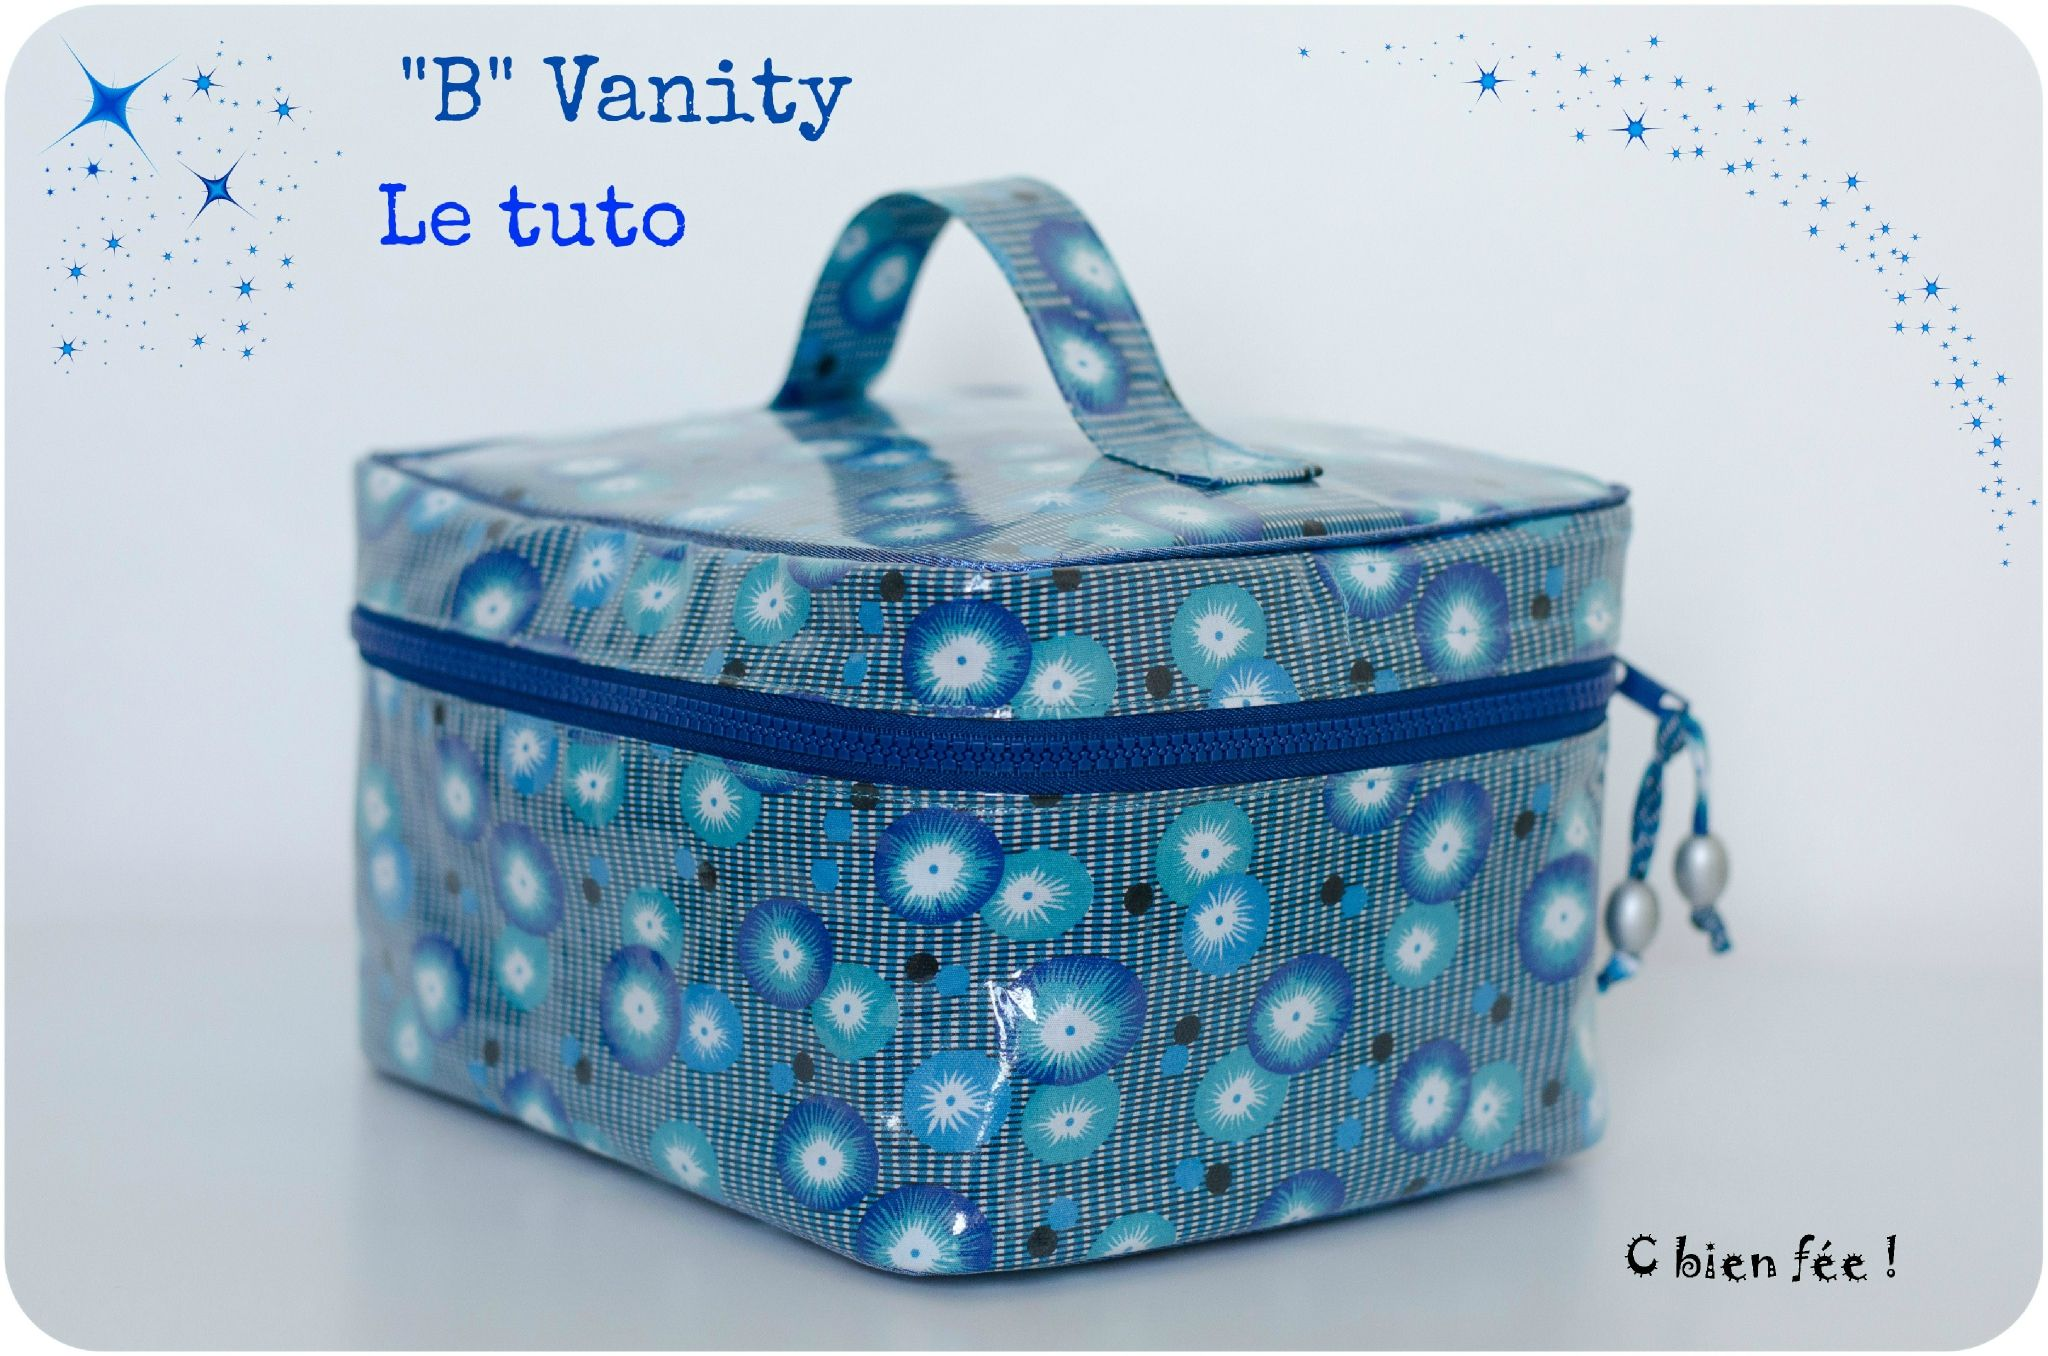 b vanity le tuto c bien f e diy couture trousses pochettes sacs valisette. Black Bedroom Furniture Sets. Home Design Ideas